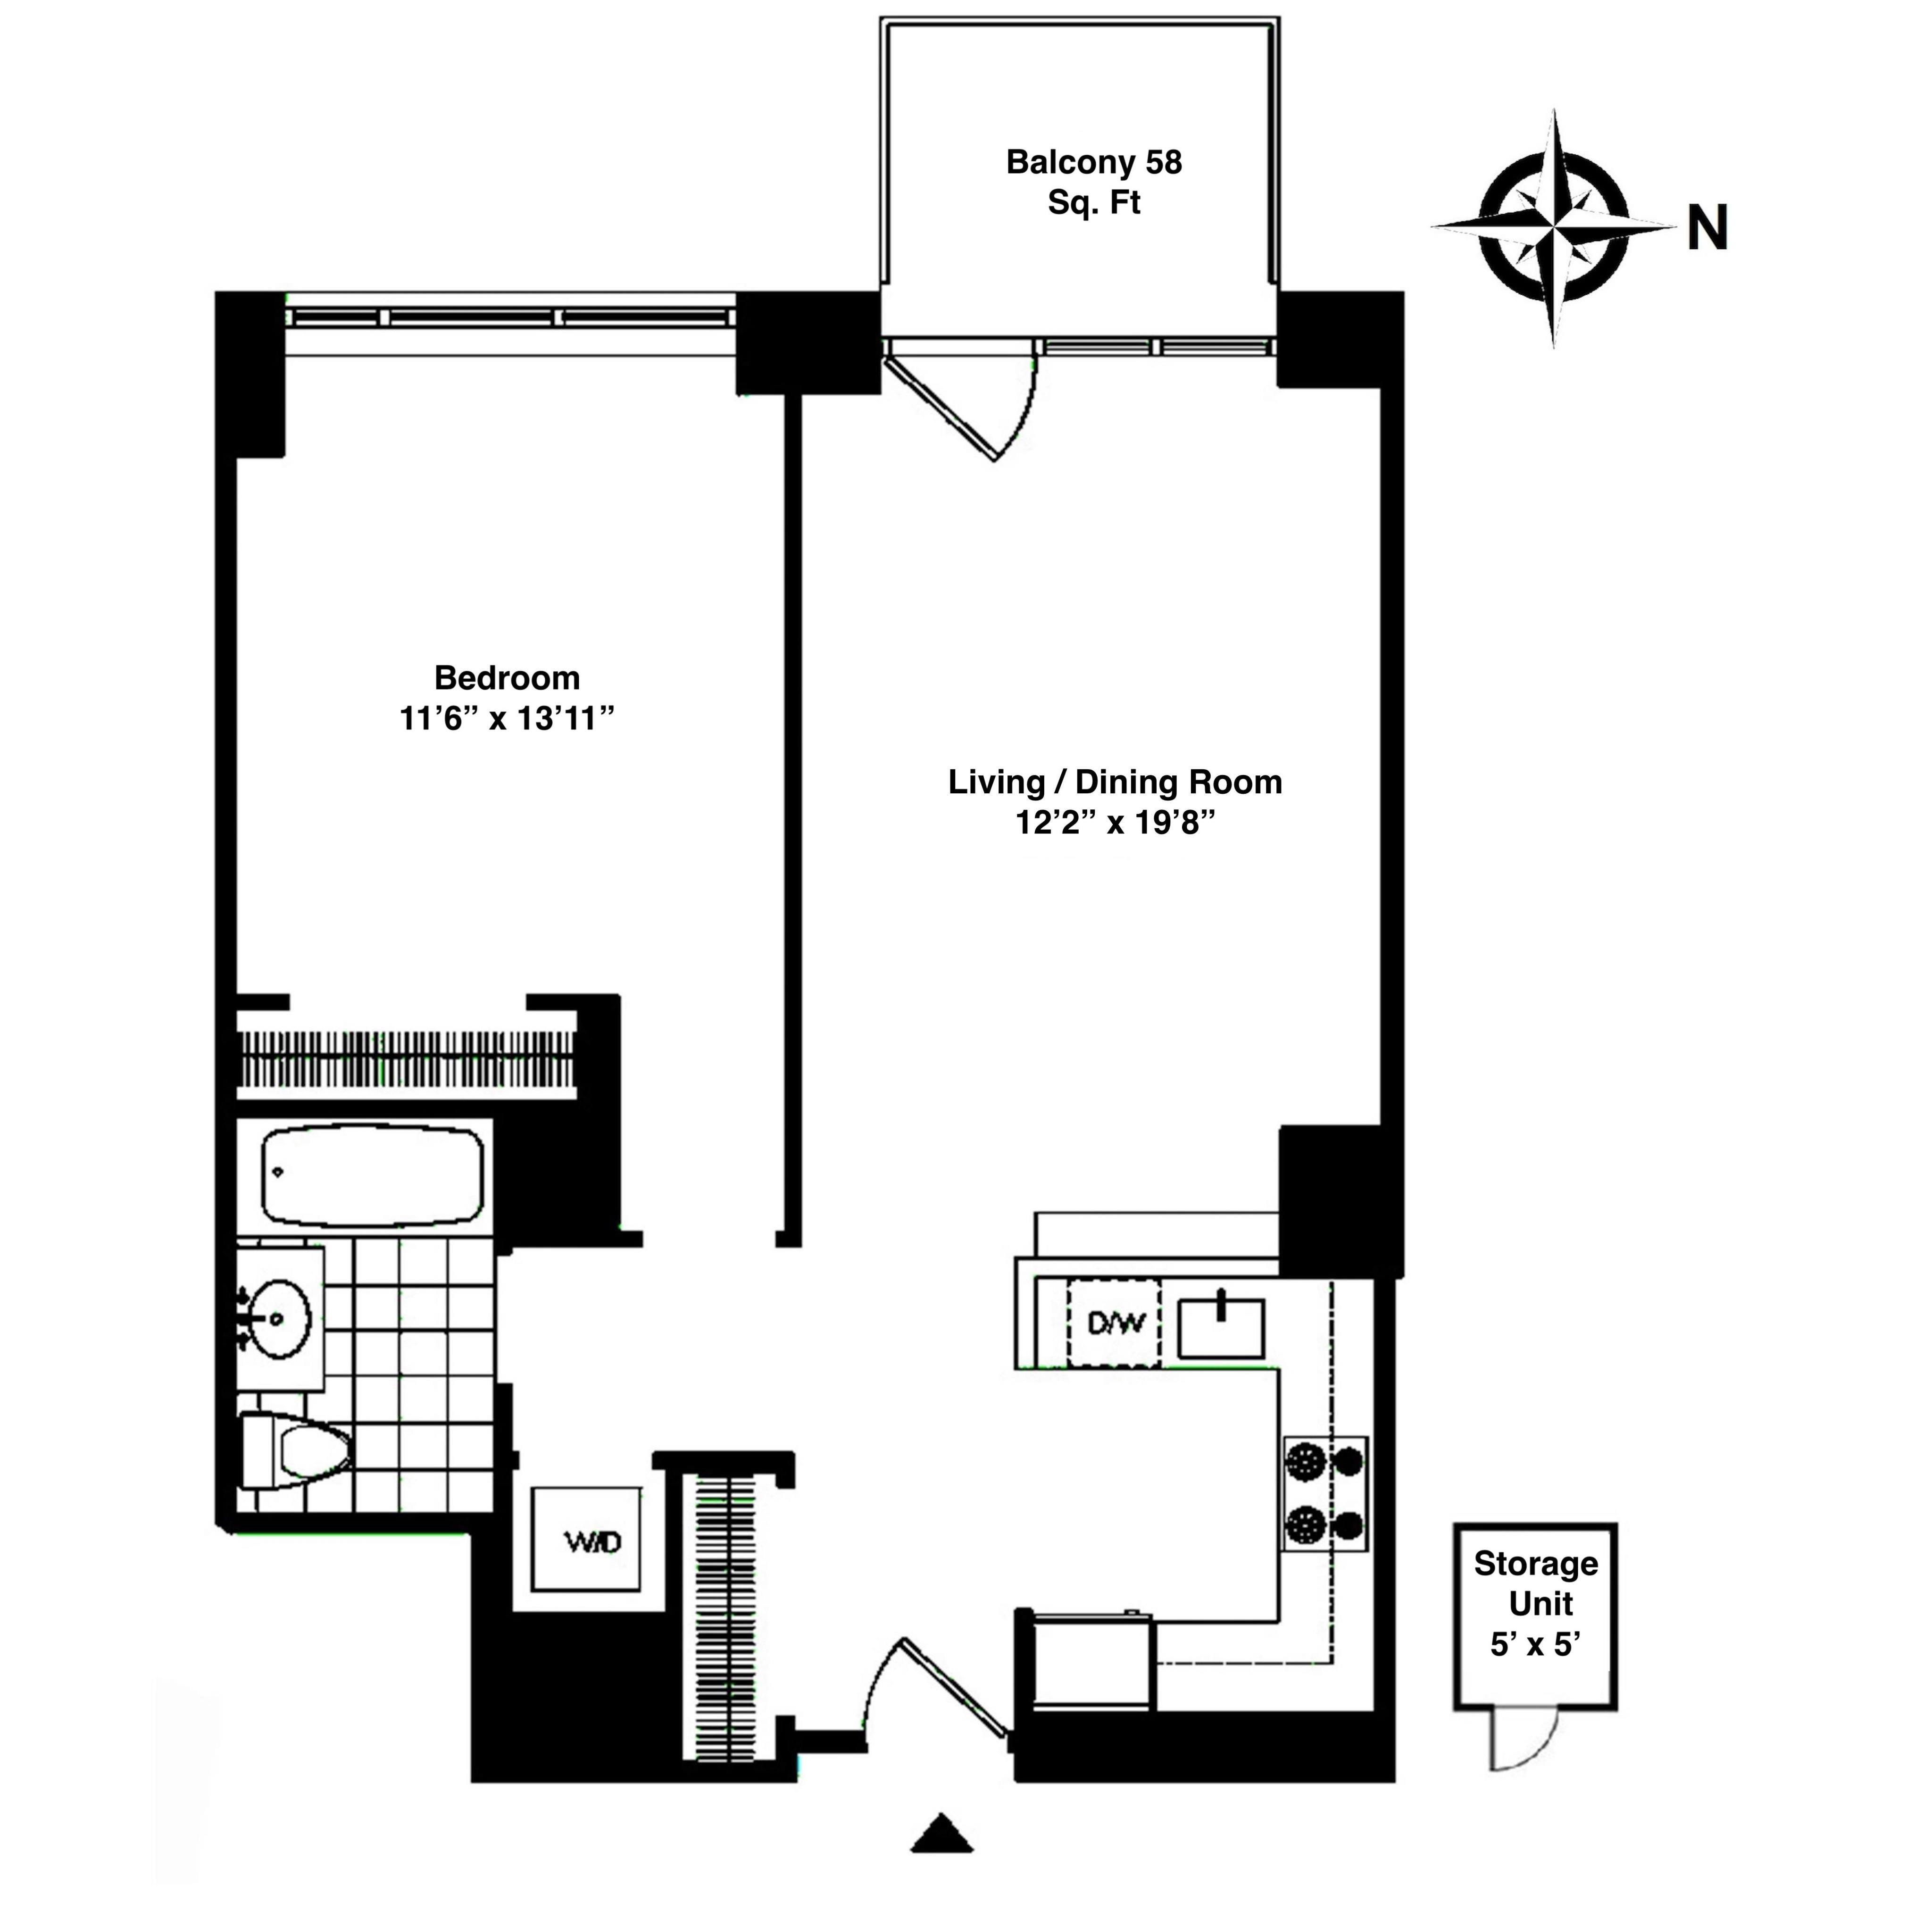 Apartment Complex Charleston Sc: The Charleston At 225 East 34th Street In Murray Hill